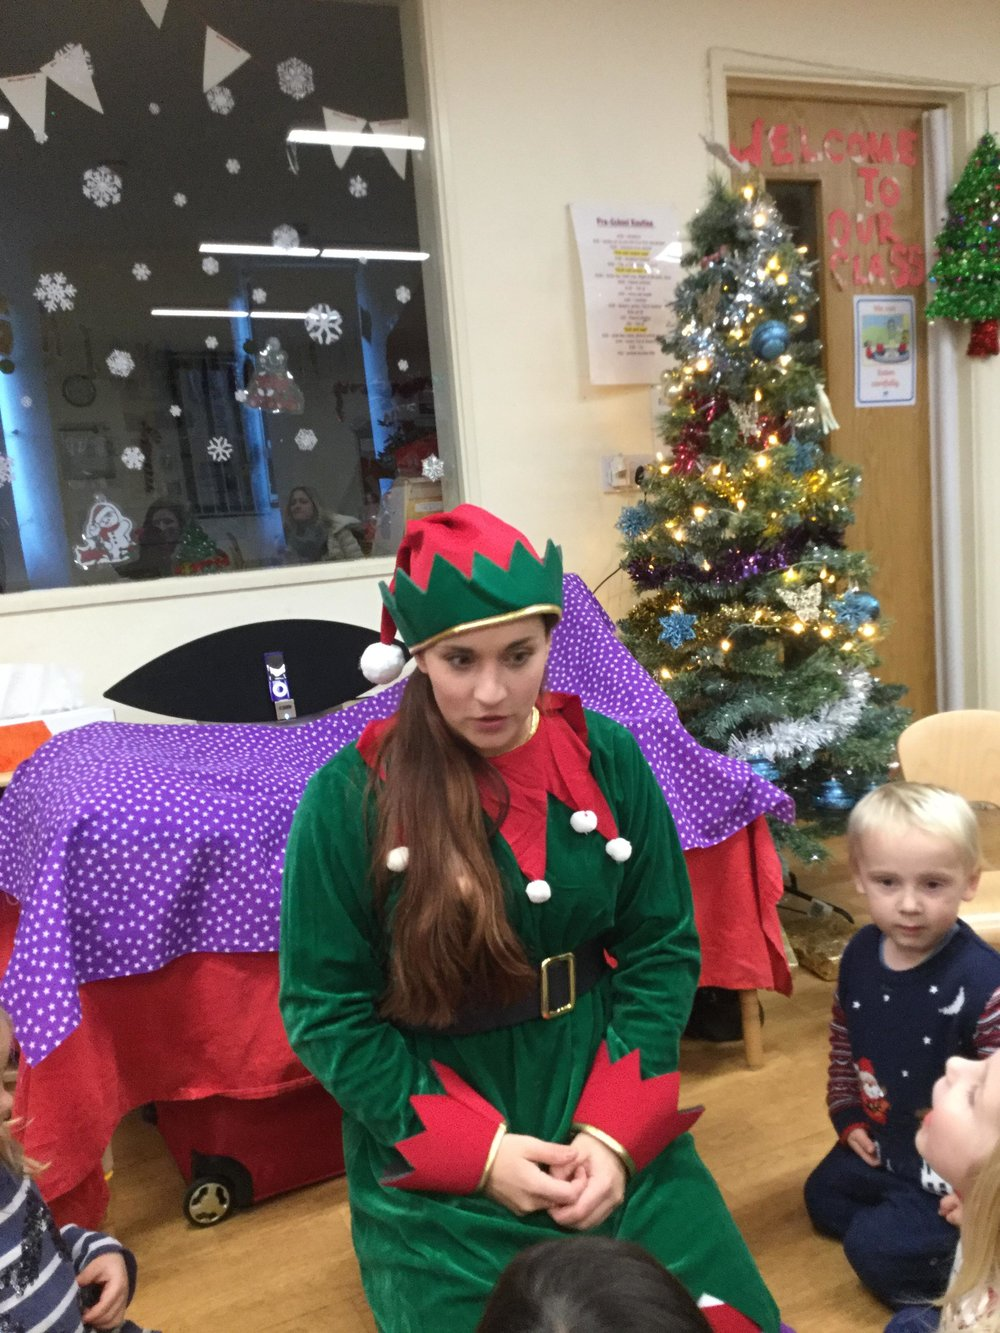 Cosmic Chloe is here to play!!! - The Preschool children enjoyed some party games and a magic show from Cosmic Chloe- they had a great time Elfing around.